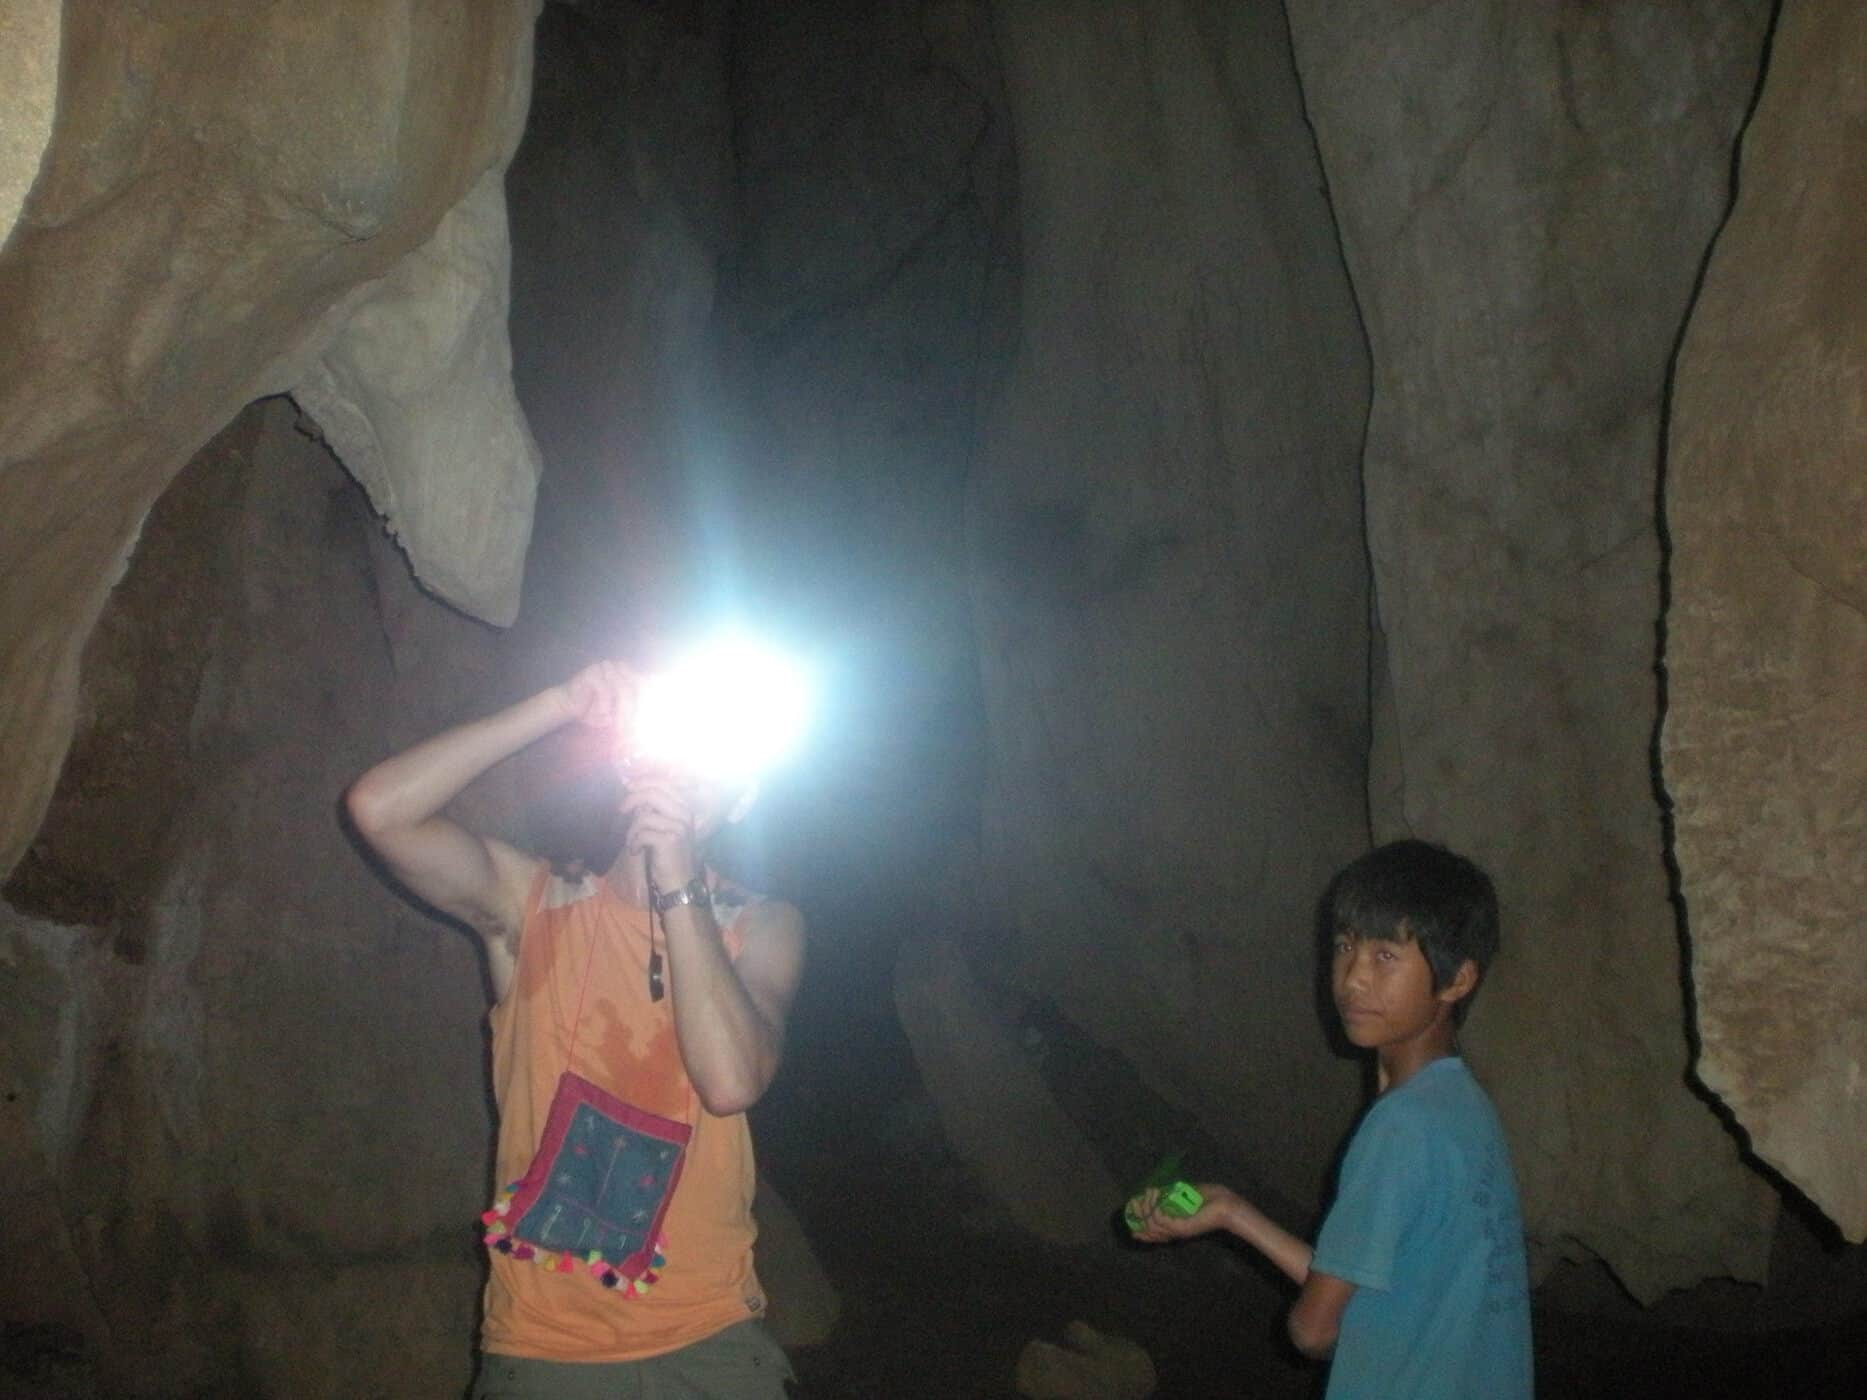 Caving with a young guide in Vang Vieng, Laos.